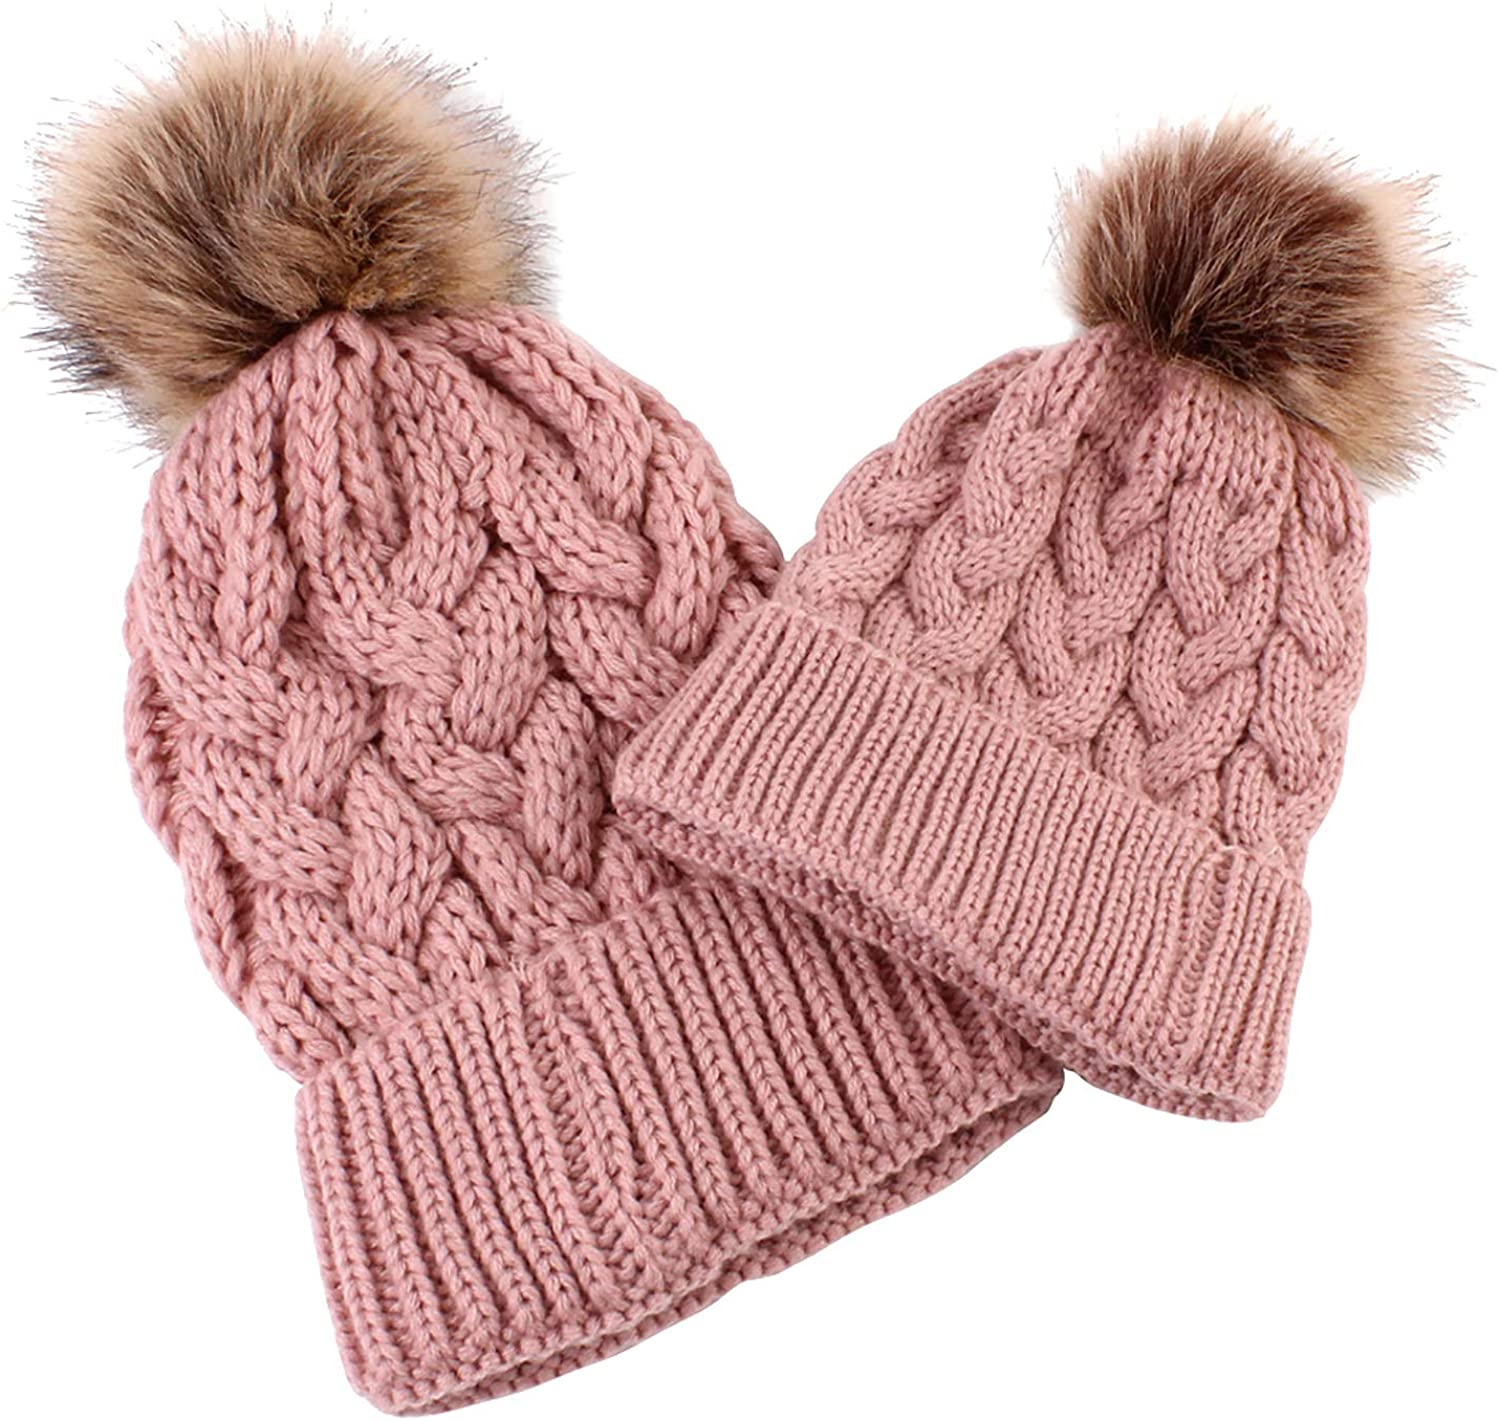 2Pcs Parent-Child Hat Winter Warm Soft Knit Hat Mother Child Baby Family Crochet Beanie Ski Cap for Mother Daughter Son